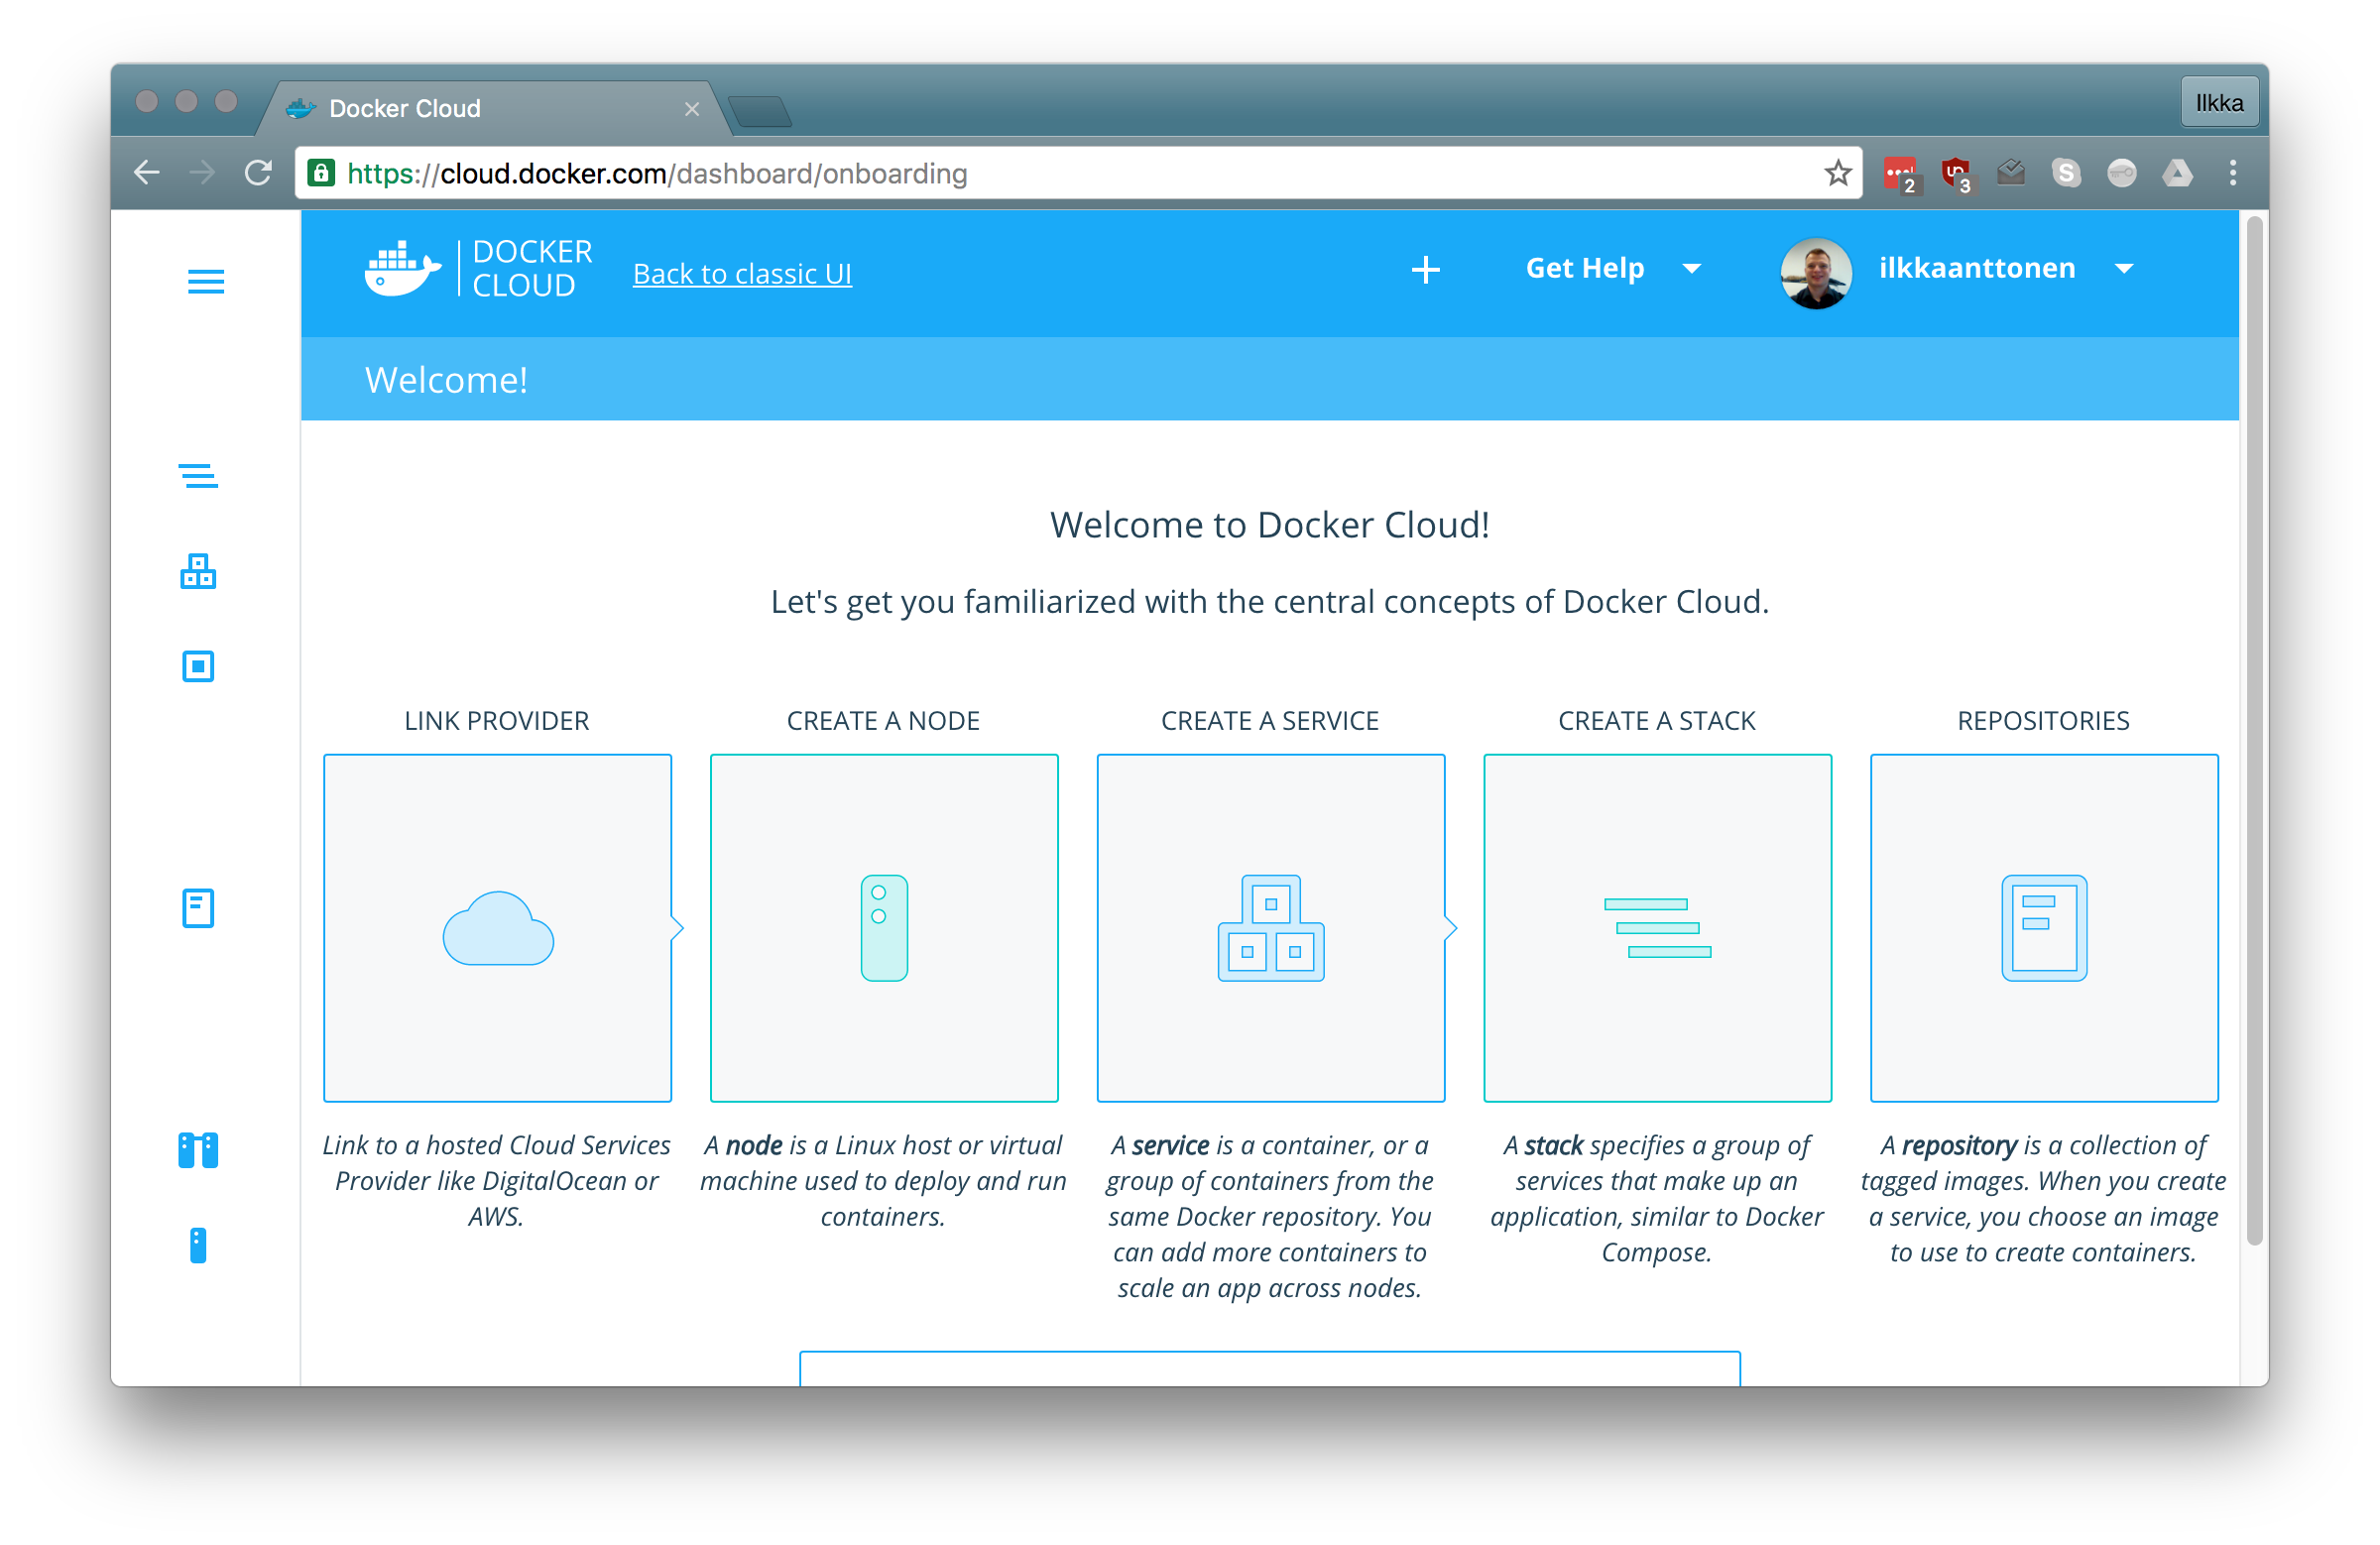 Getting started with Docker Cloud